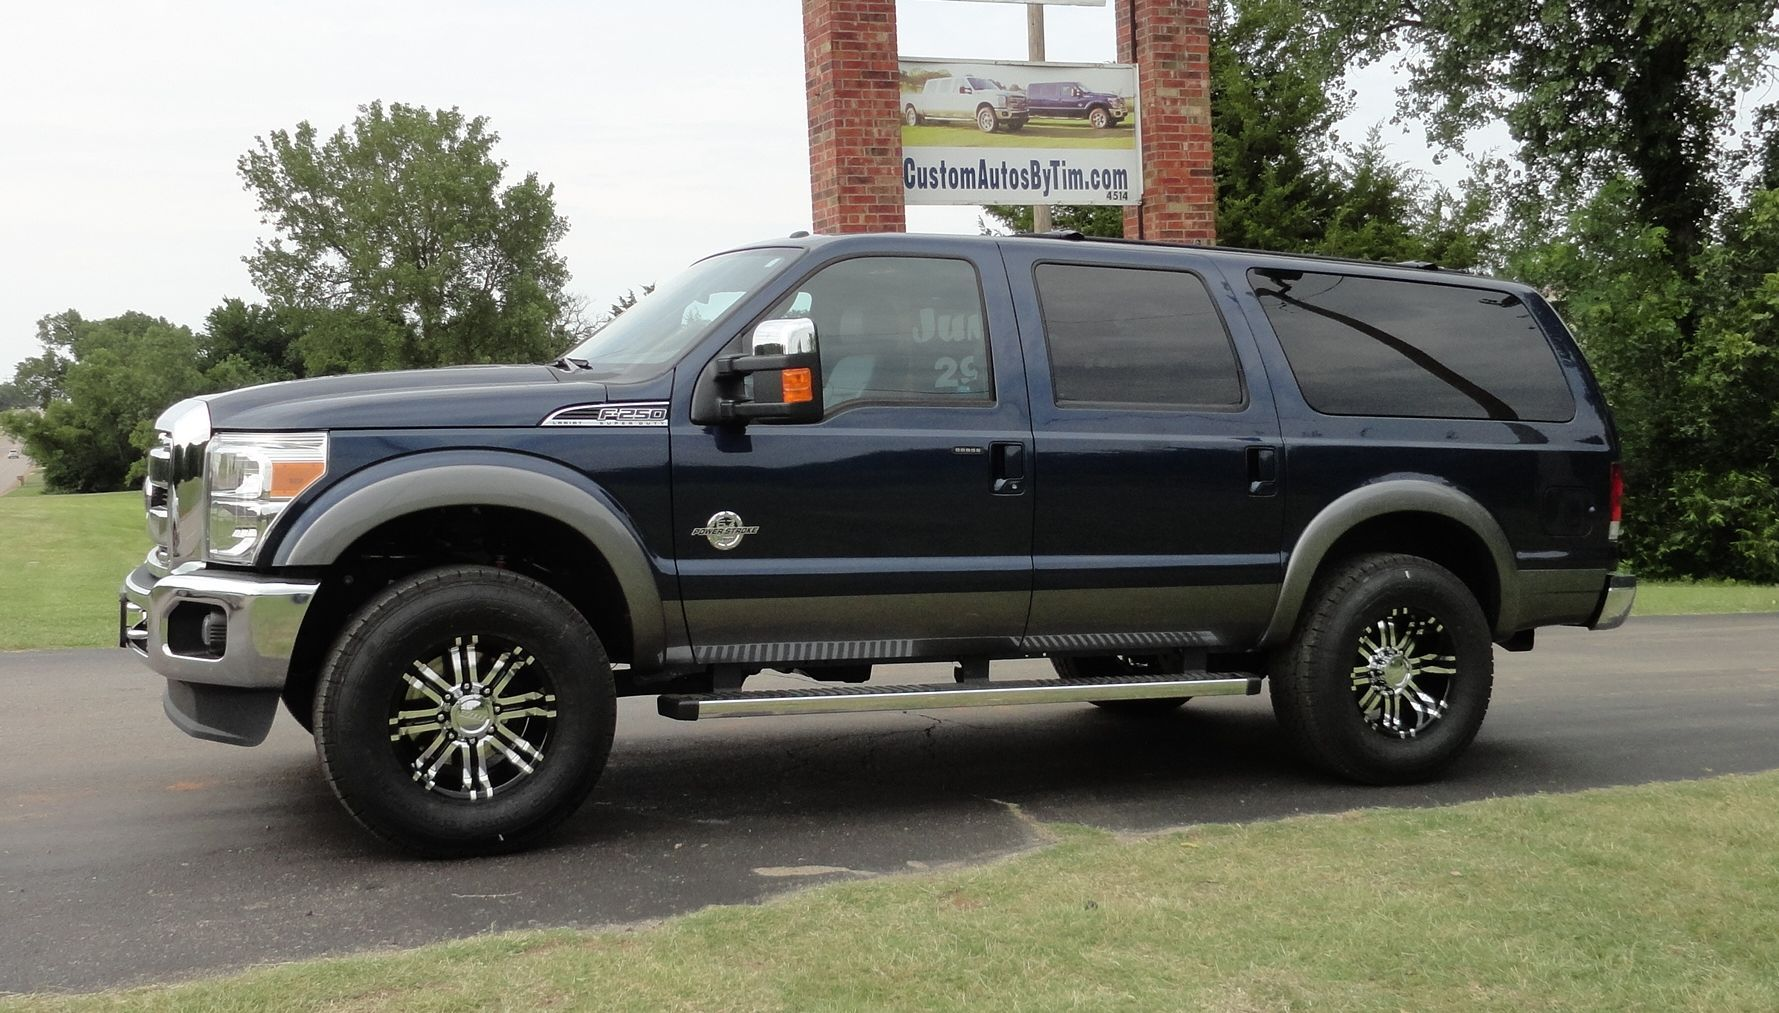 Ford Excursion 2015 >> 2015 Ford Excursion Wow They Turn Your Pickup Into An Excursion